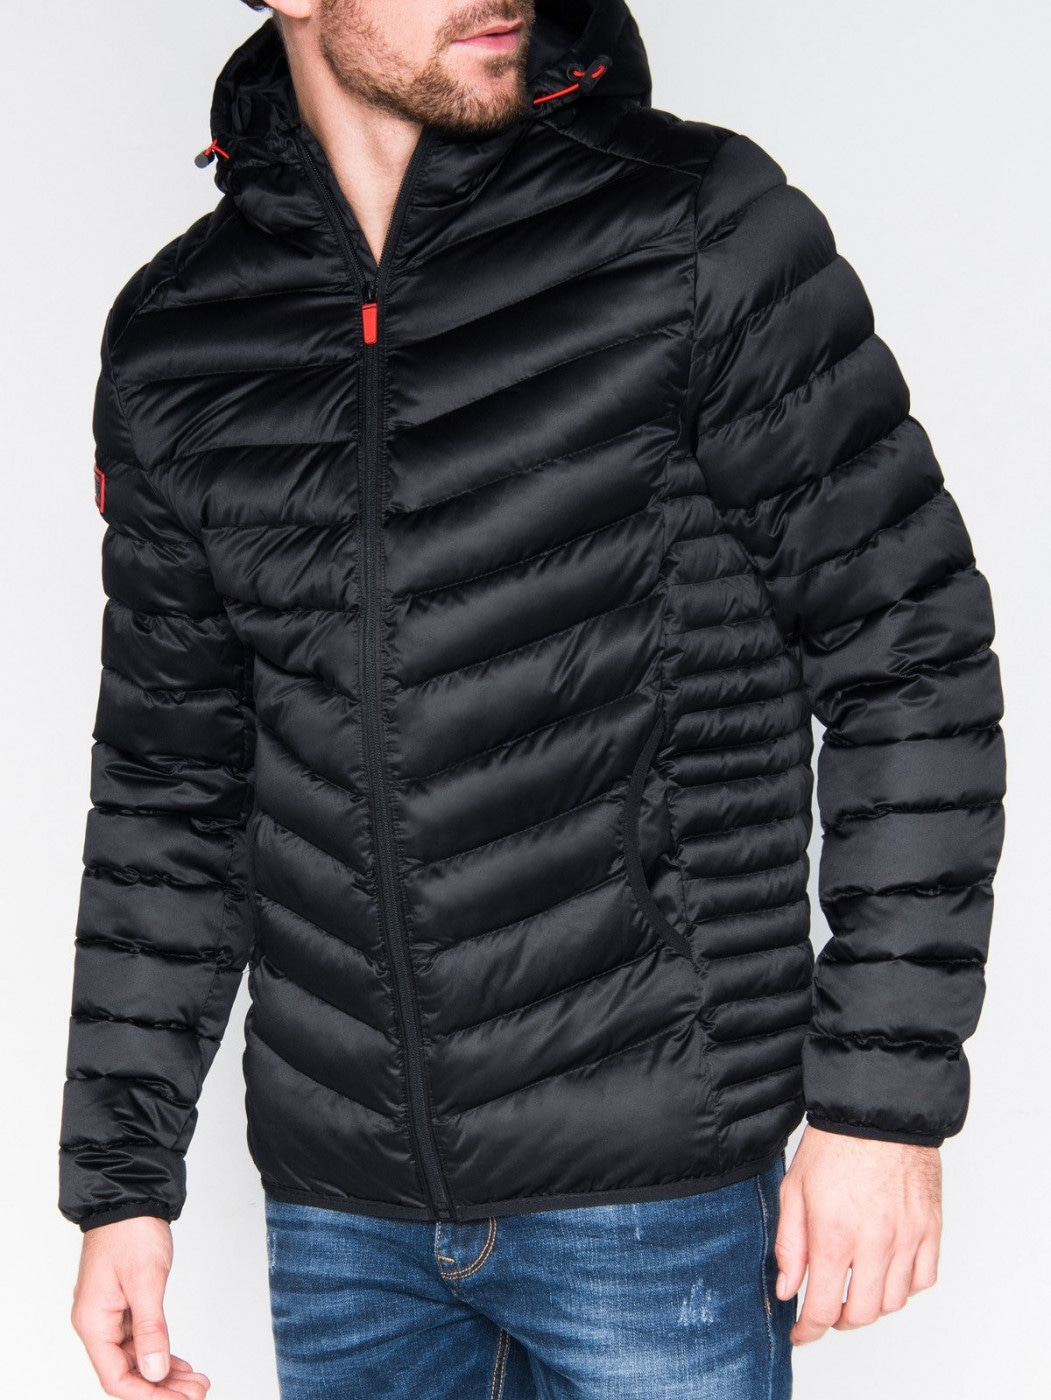 Ombre Clothing Men's winter quilted jacket C368